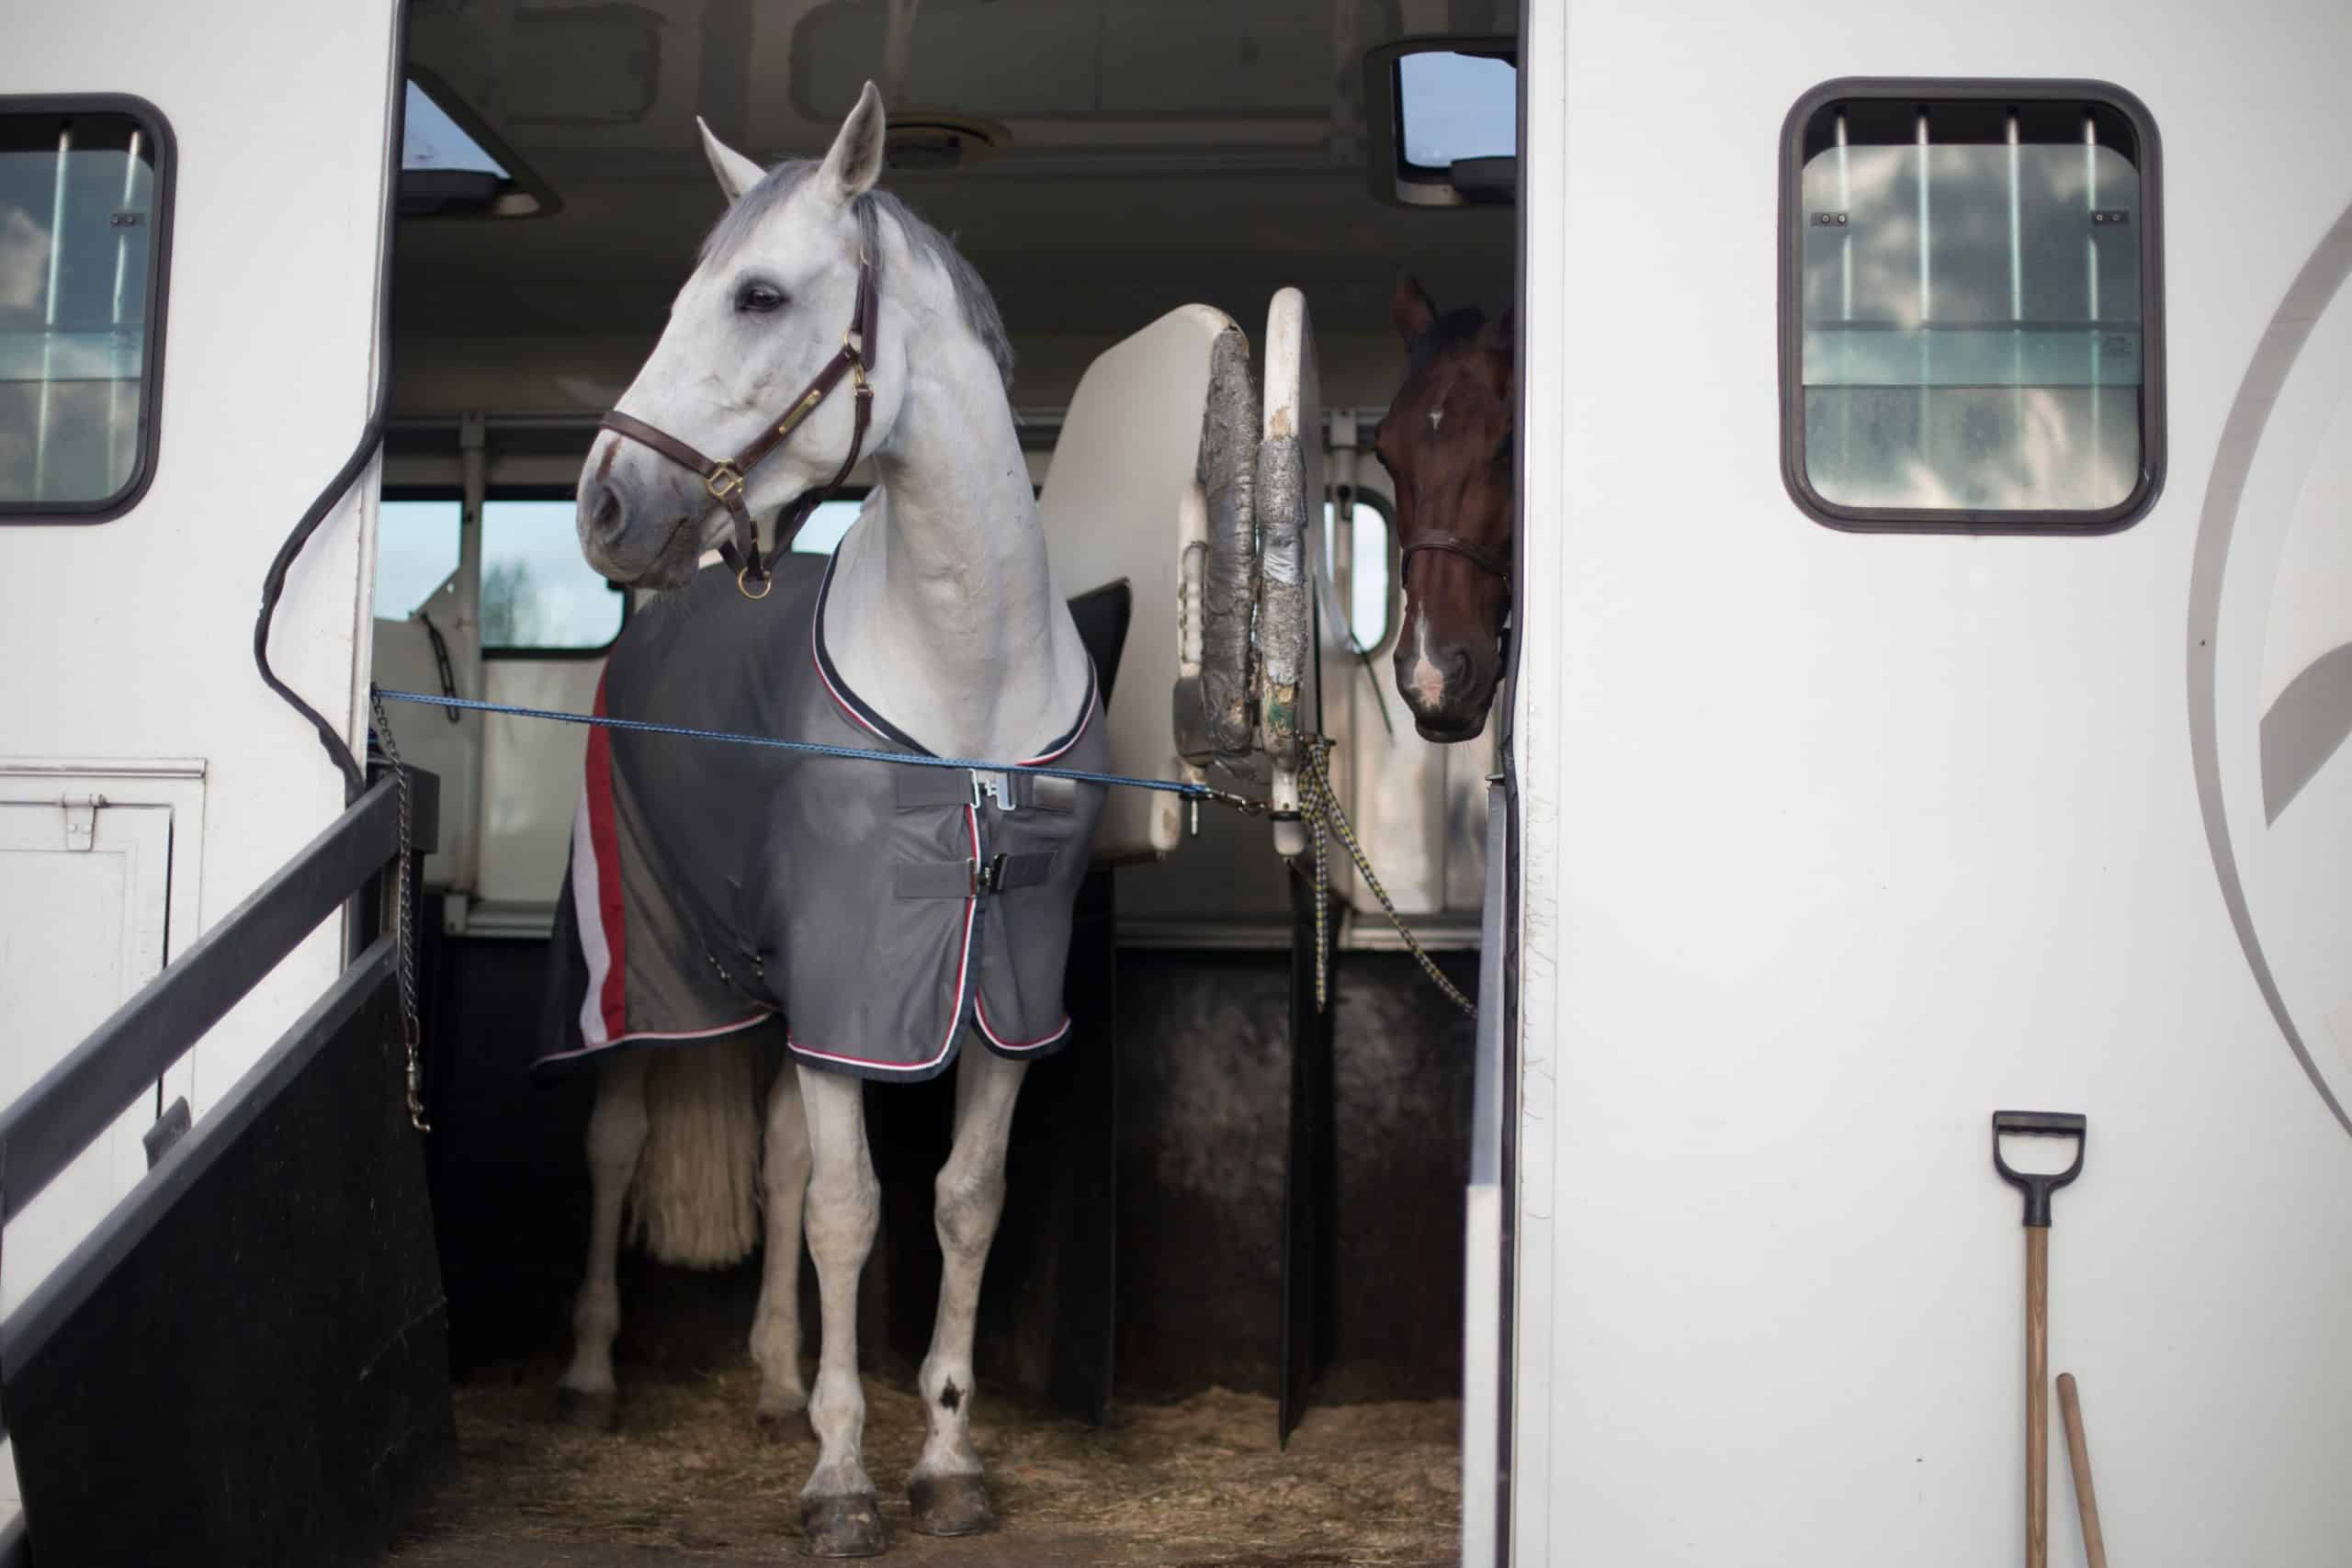 A horse is waiting with another horse inside a trailer